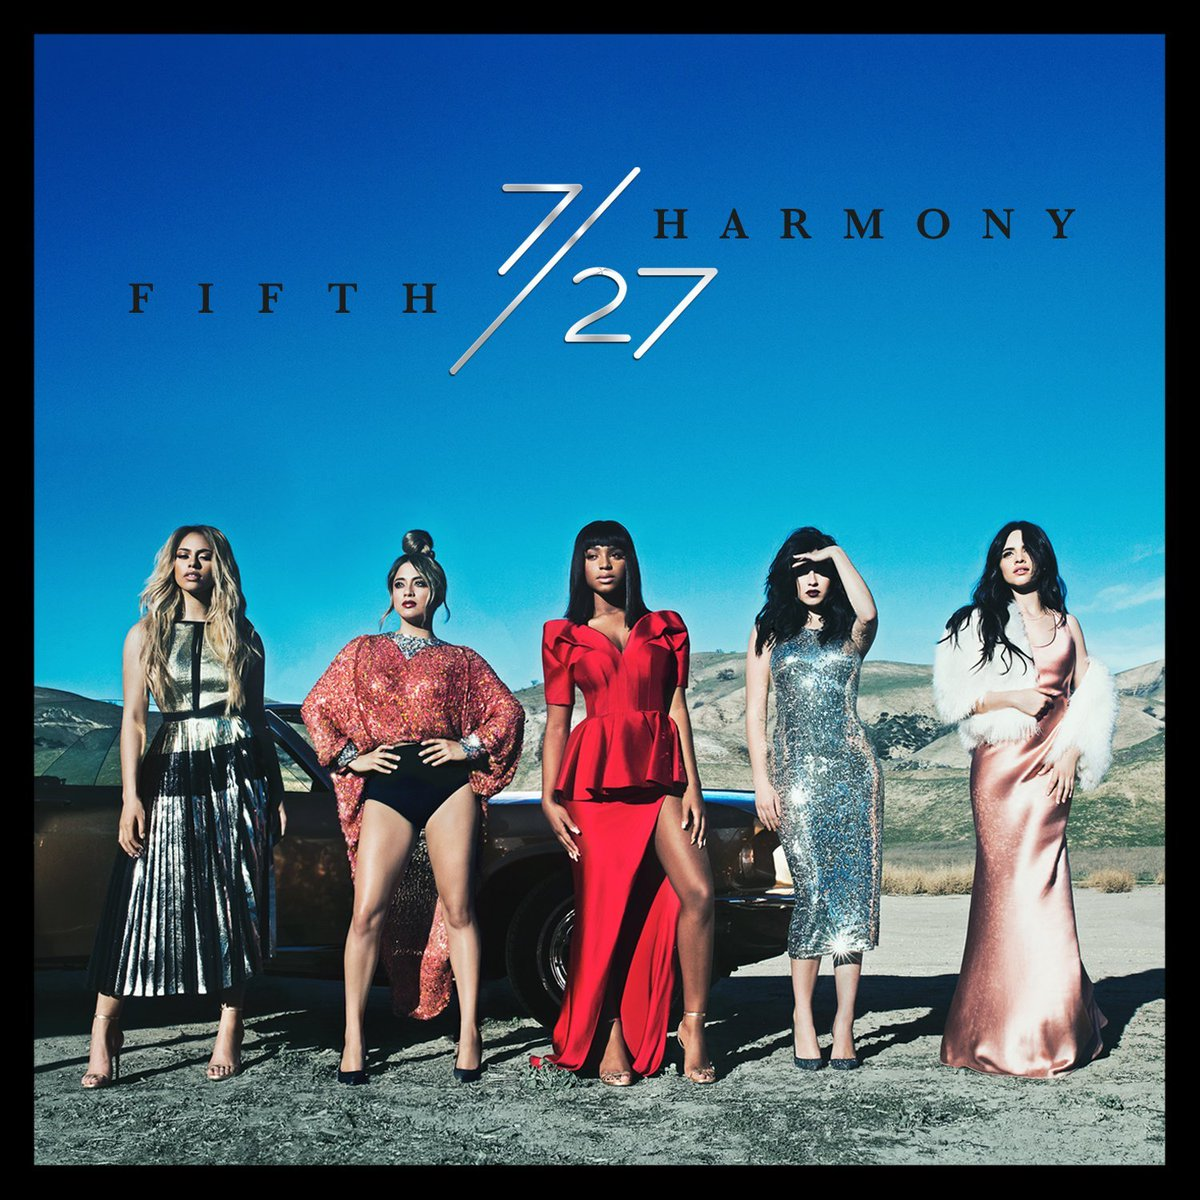 Happy Album Release Day! If you haven't, check out the new album 7/27 by @FifthHarmony here: https://t.co/h523UcU6XY https://t.co/aNw7iIQ1dQ